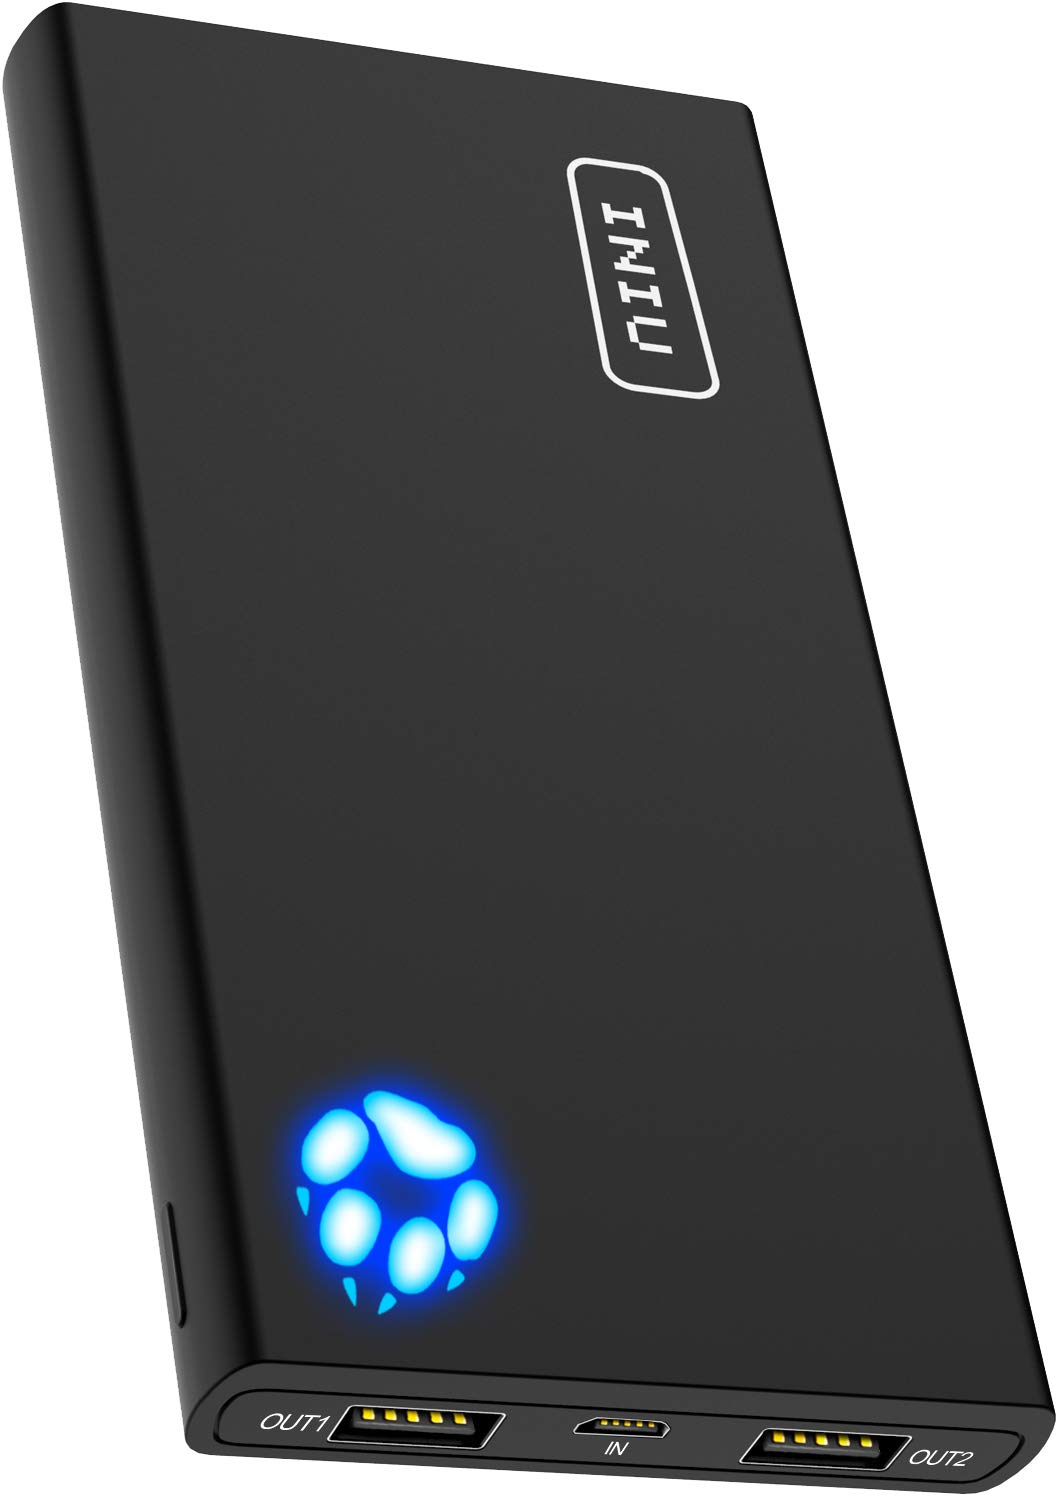 INIU Portable Charger, 10000mAh Power Bank, 4.8A High-Speed 2 USB Ports with Flashlight Battery Pack, Ultra Compact Phone Charger Compatible with Iphone XS X 8 7 6 Samsung Galaxy S9 Note 9 iPad Tablet by INIU